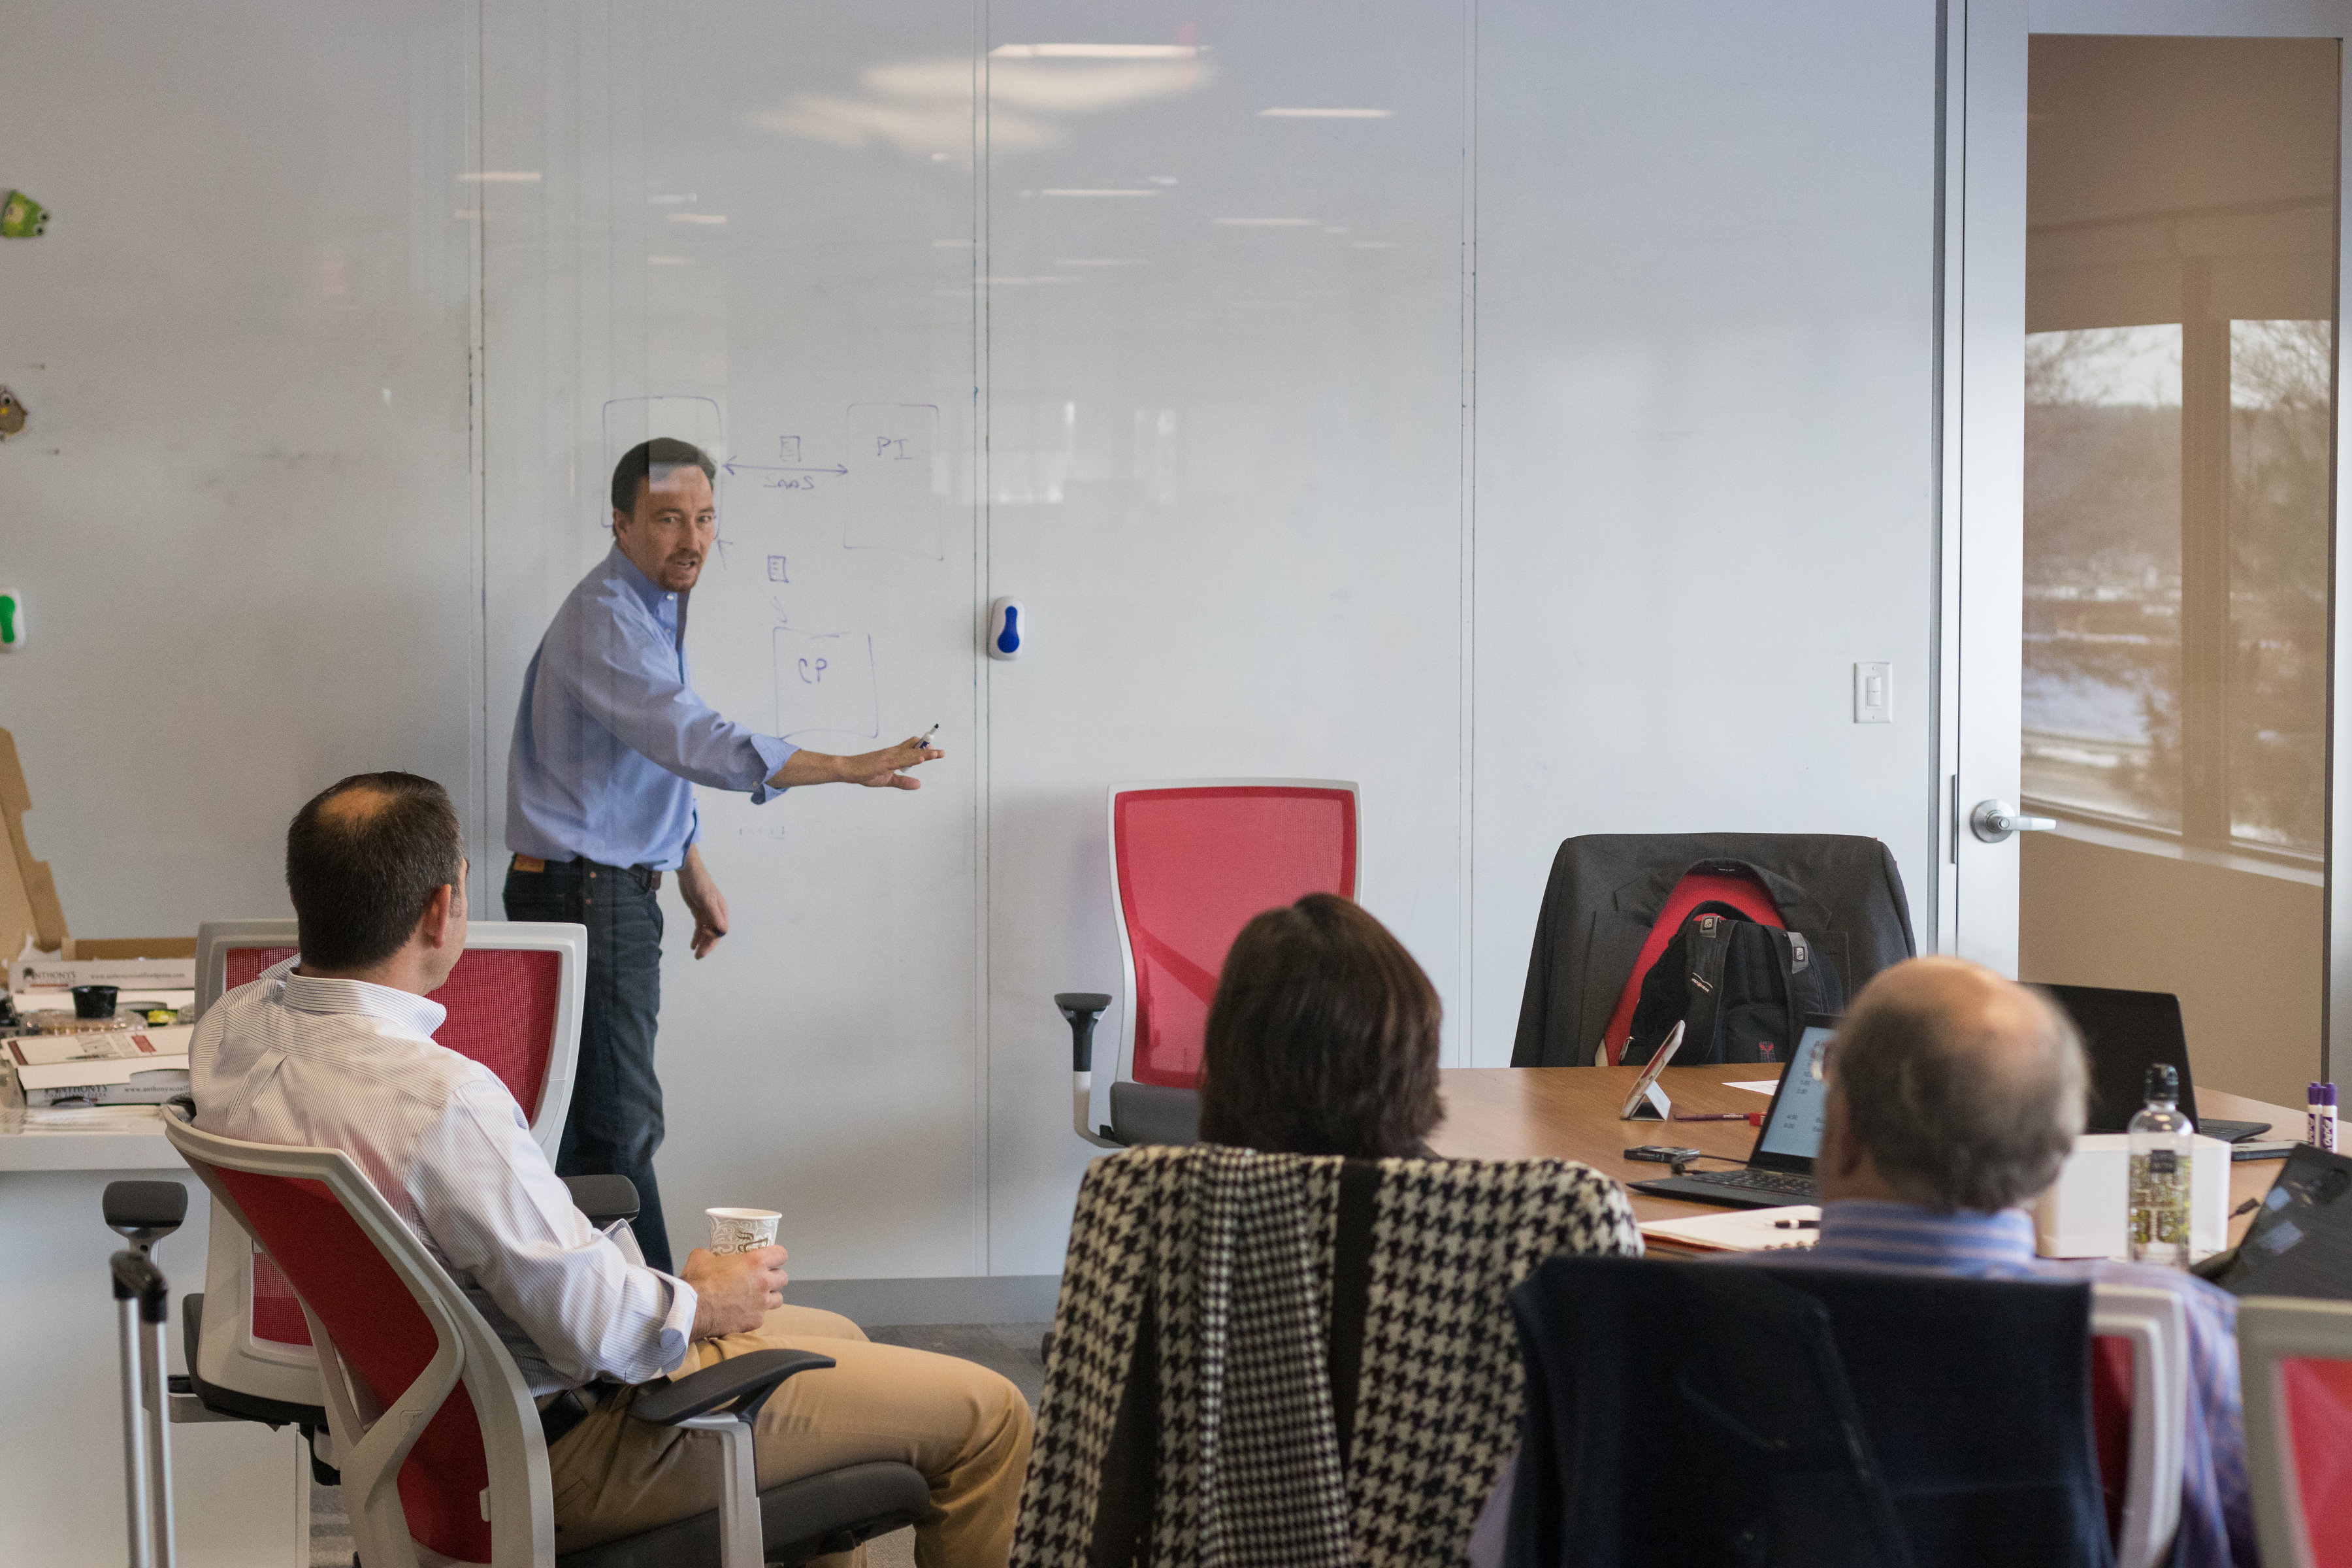 Manager engages in strategic workforce planning activity